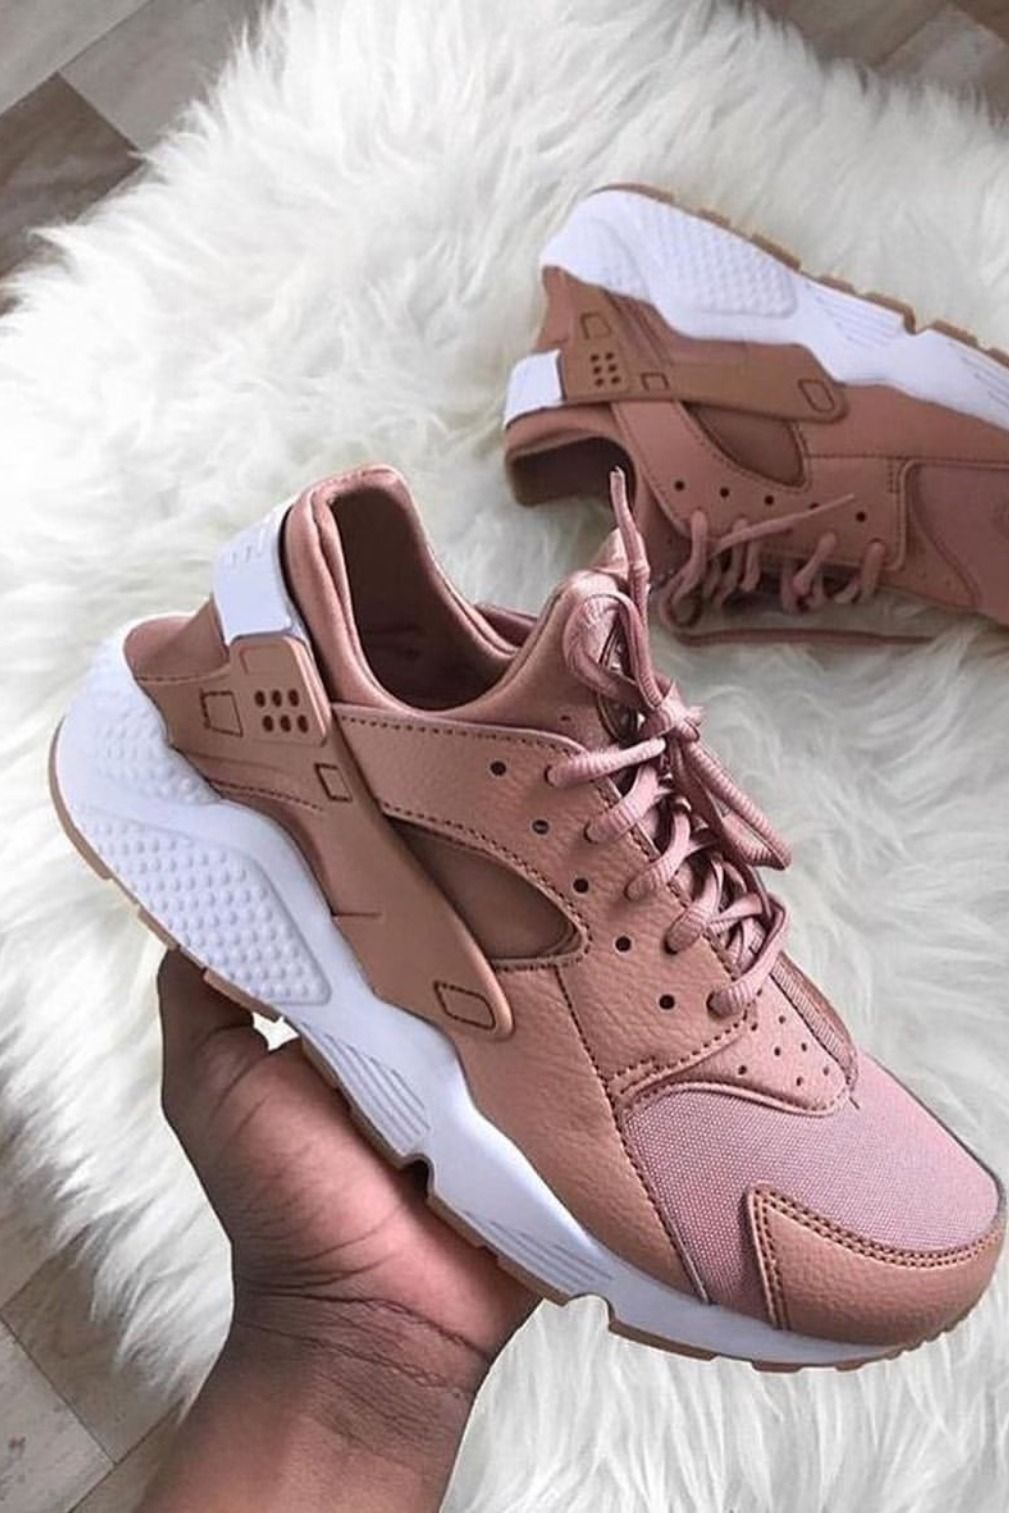 Shoes | Schoenen | Sneakers | Pink | Rose | Roze | Adidas ...